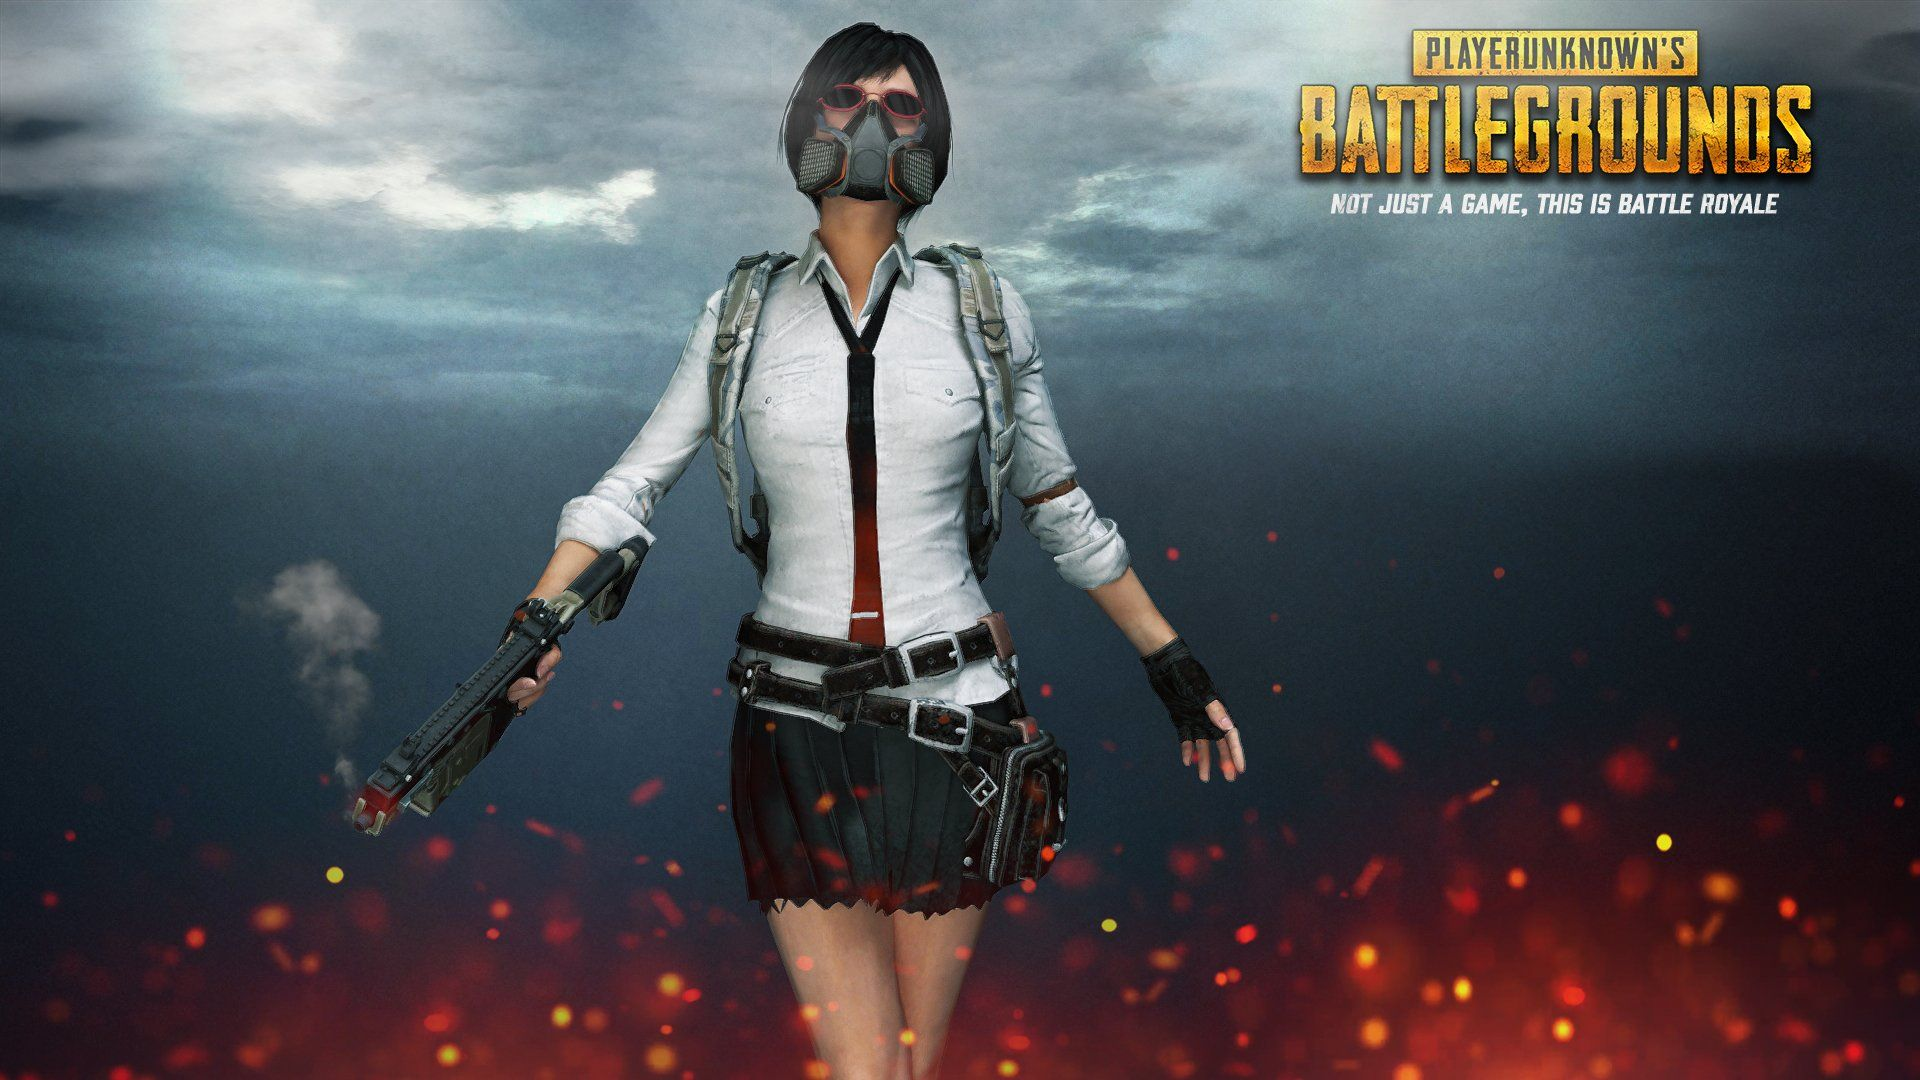 Pubg Full Hd Wallpaper Download For Pc: Video Game PlayerUnknown's Battlegrounds Wallpaper